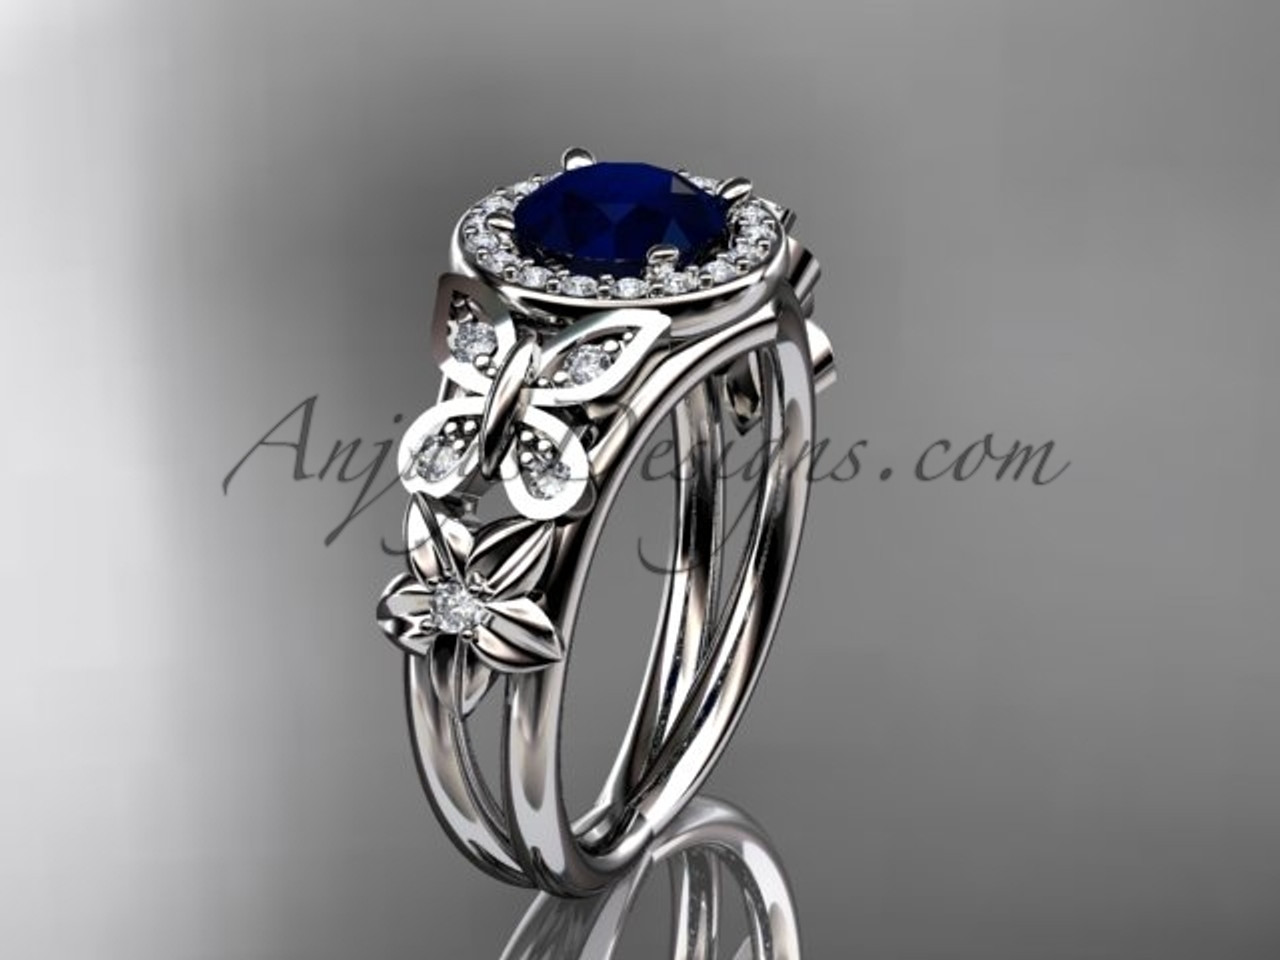 stone bands three and halo gabriel gold sapphire stones rings white diamond engagement ring